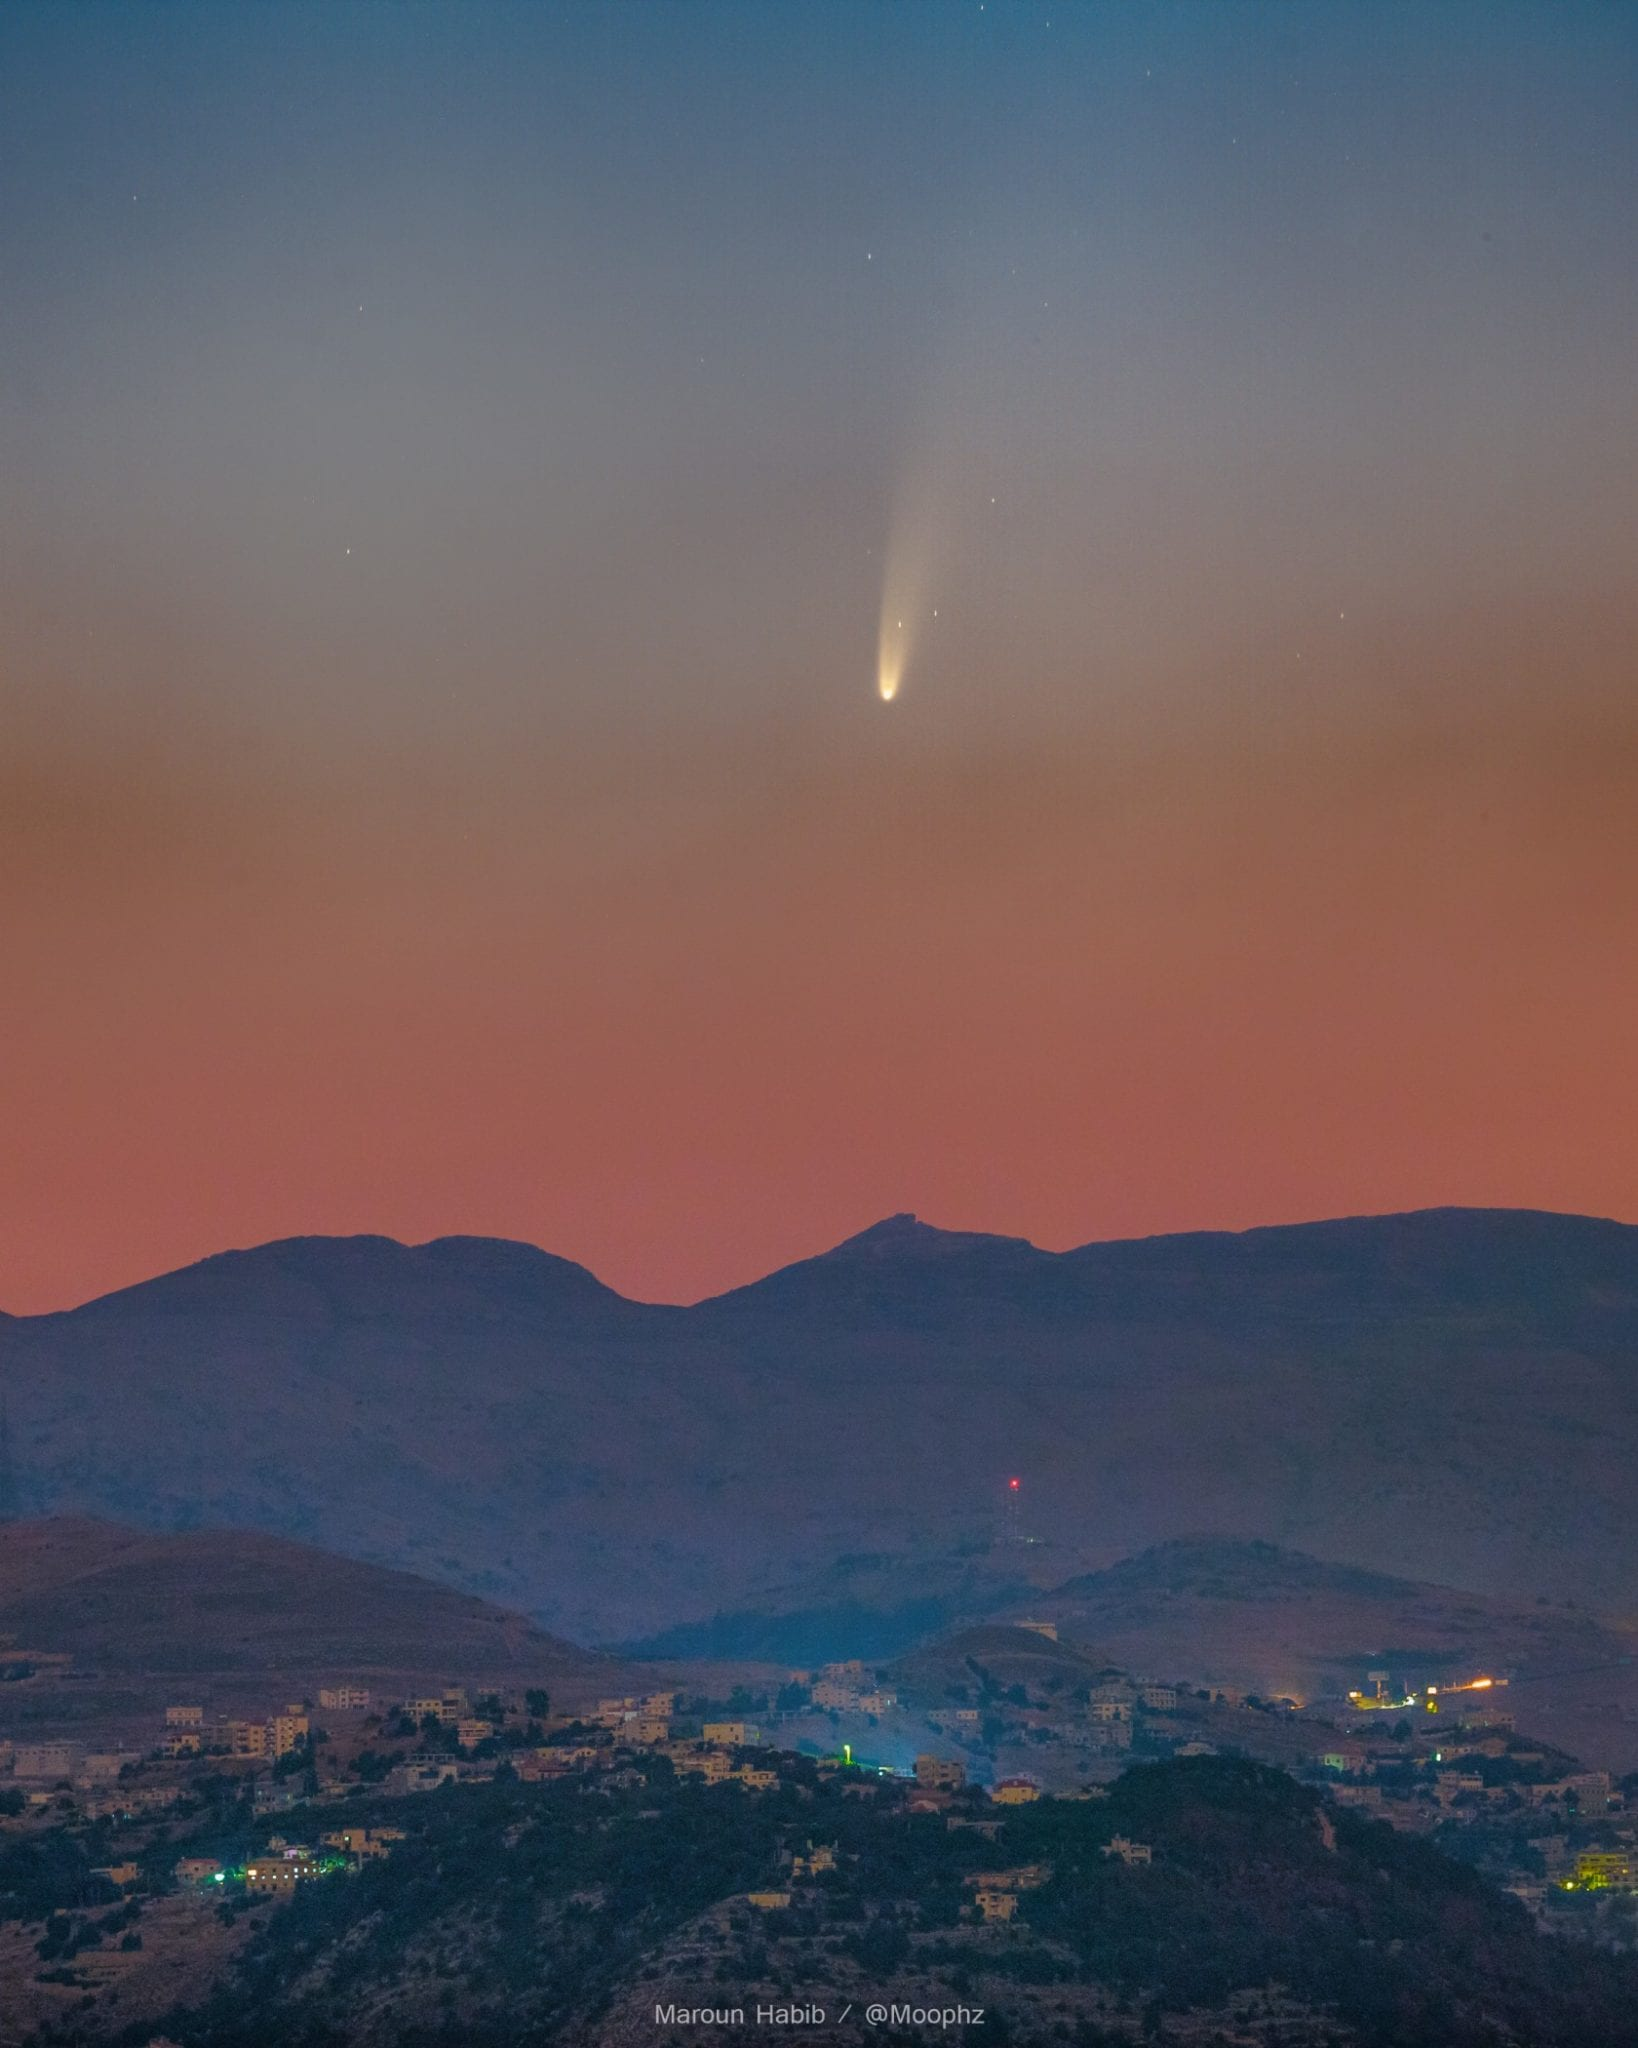 Comet NEOWISE captured over Lebanon